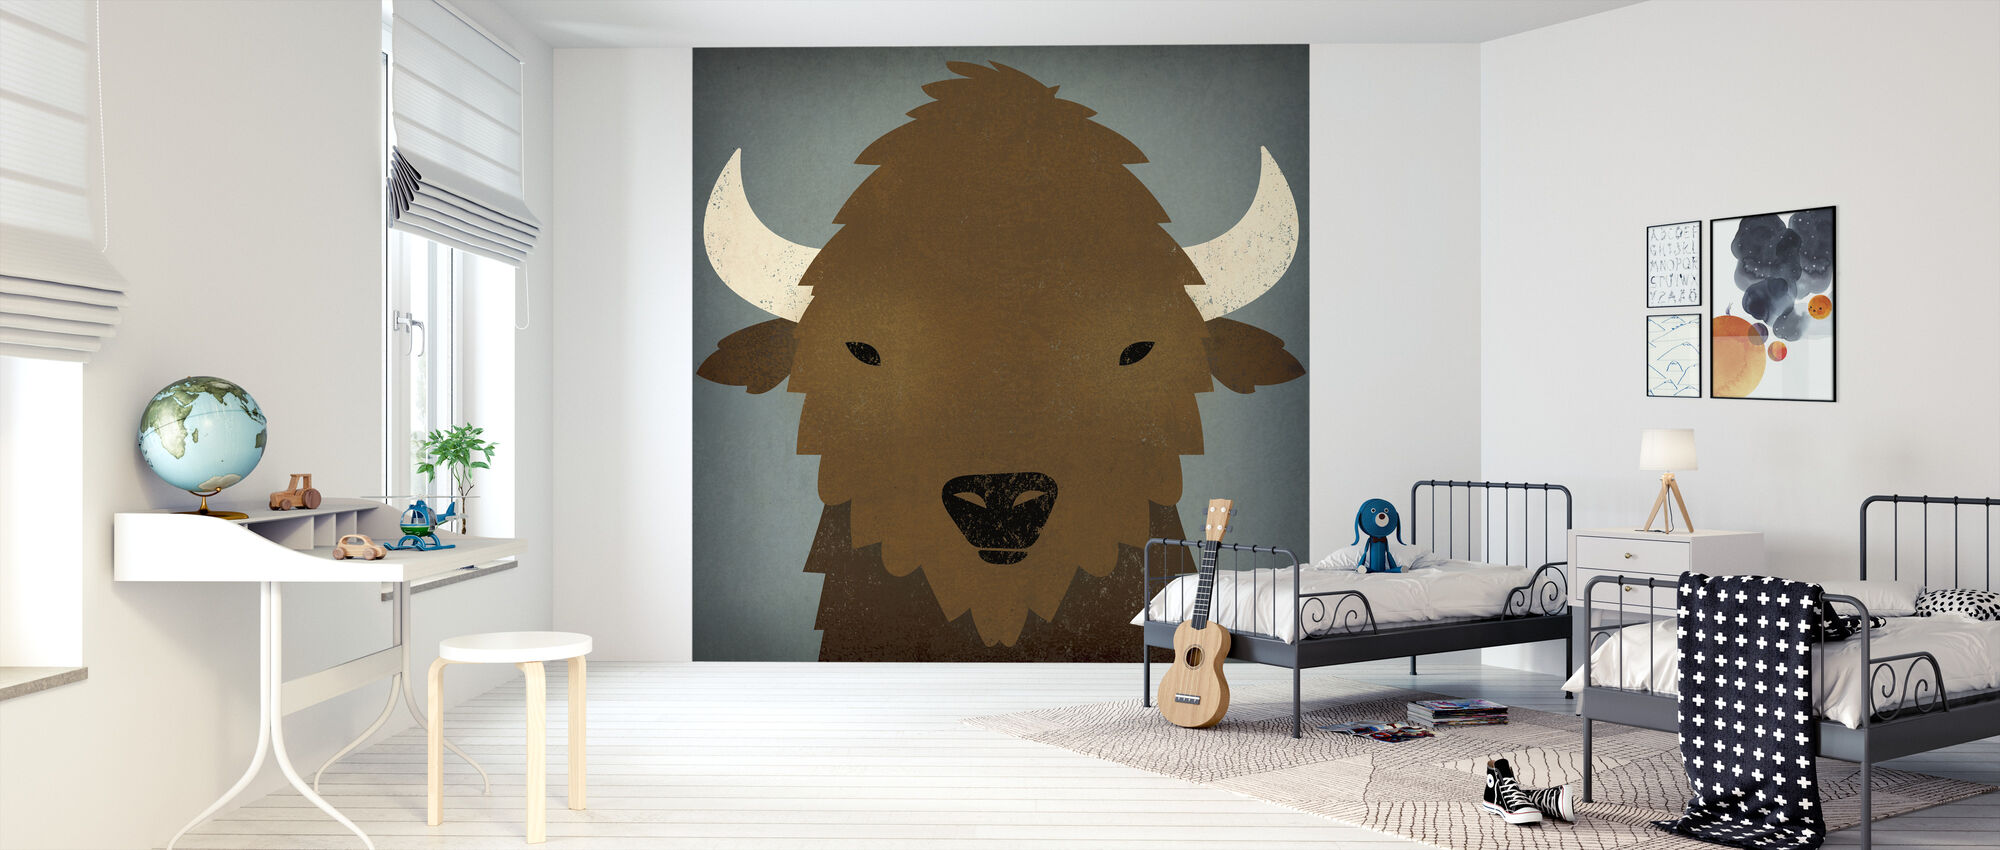 Buffalo Blues - Behang - Kinderkamer